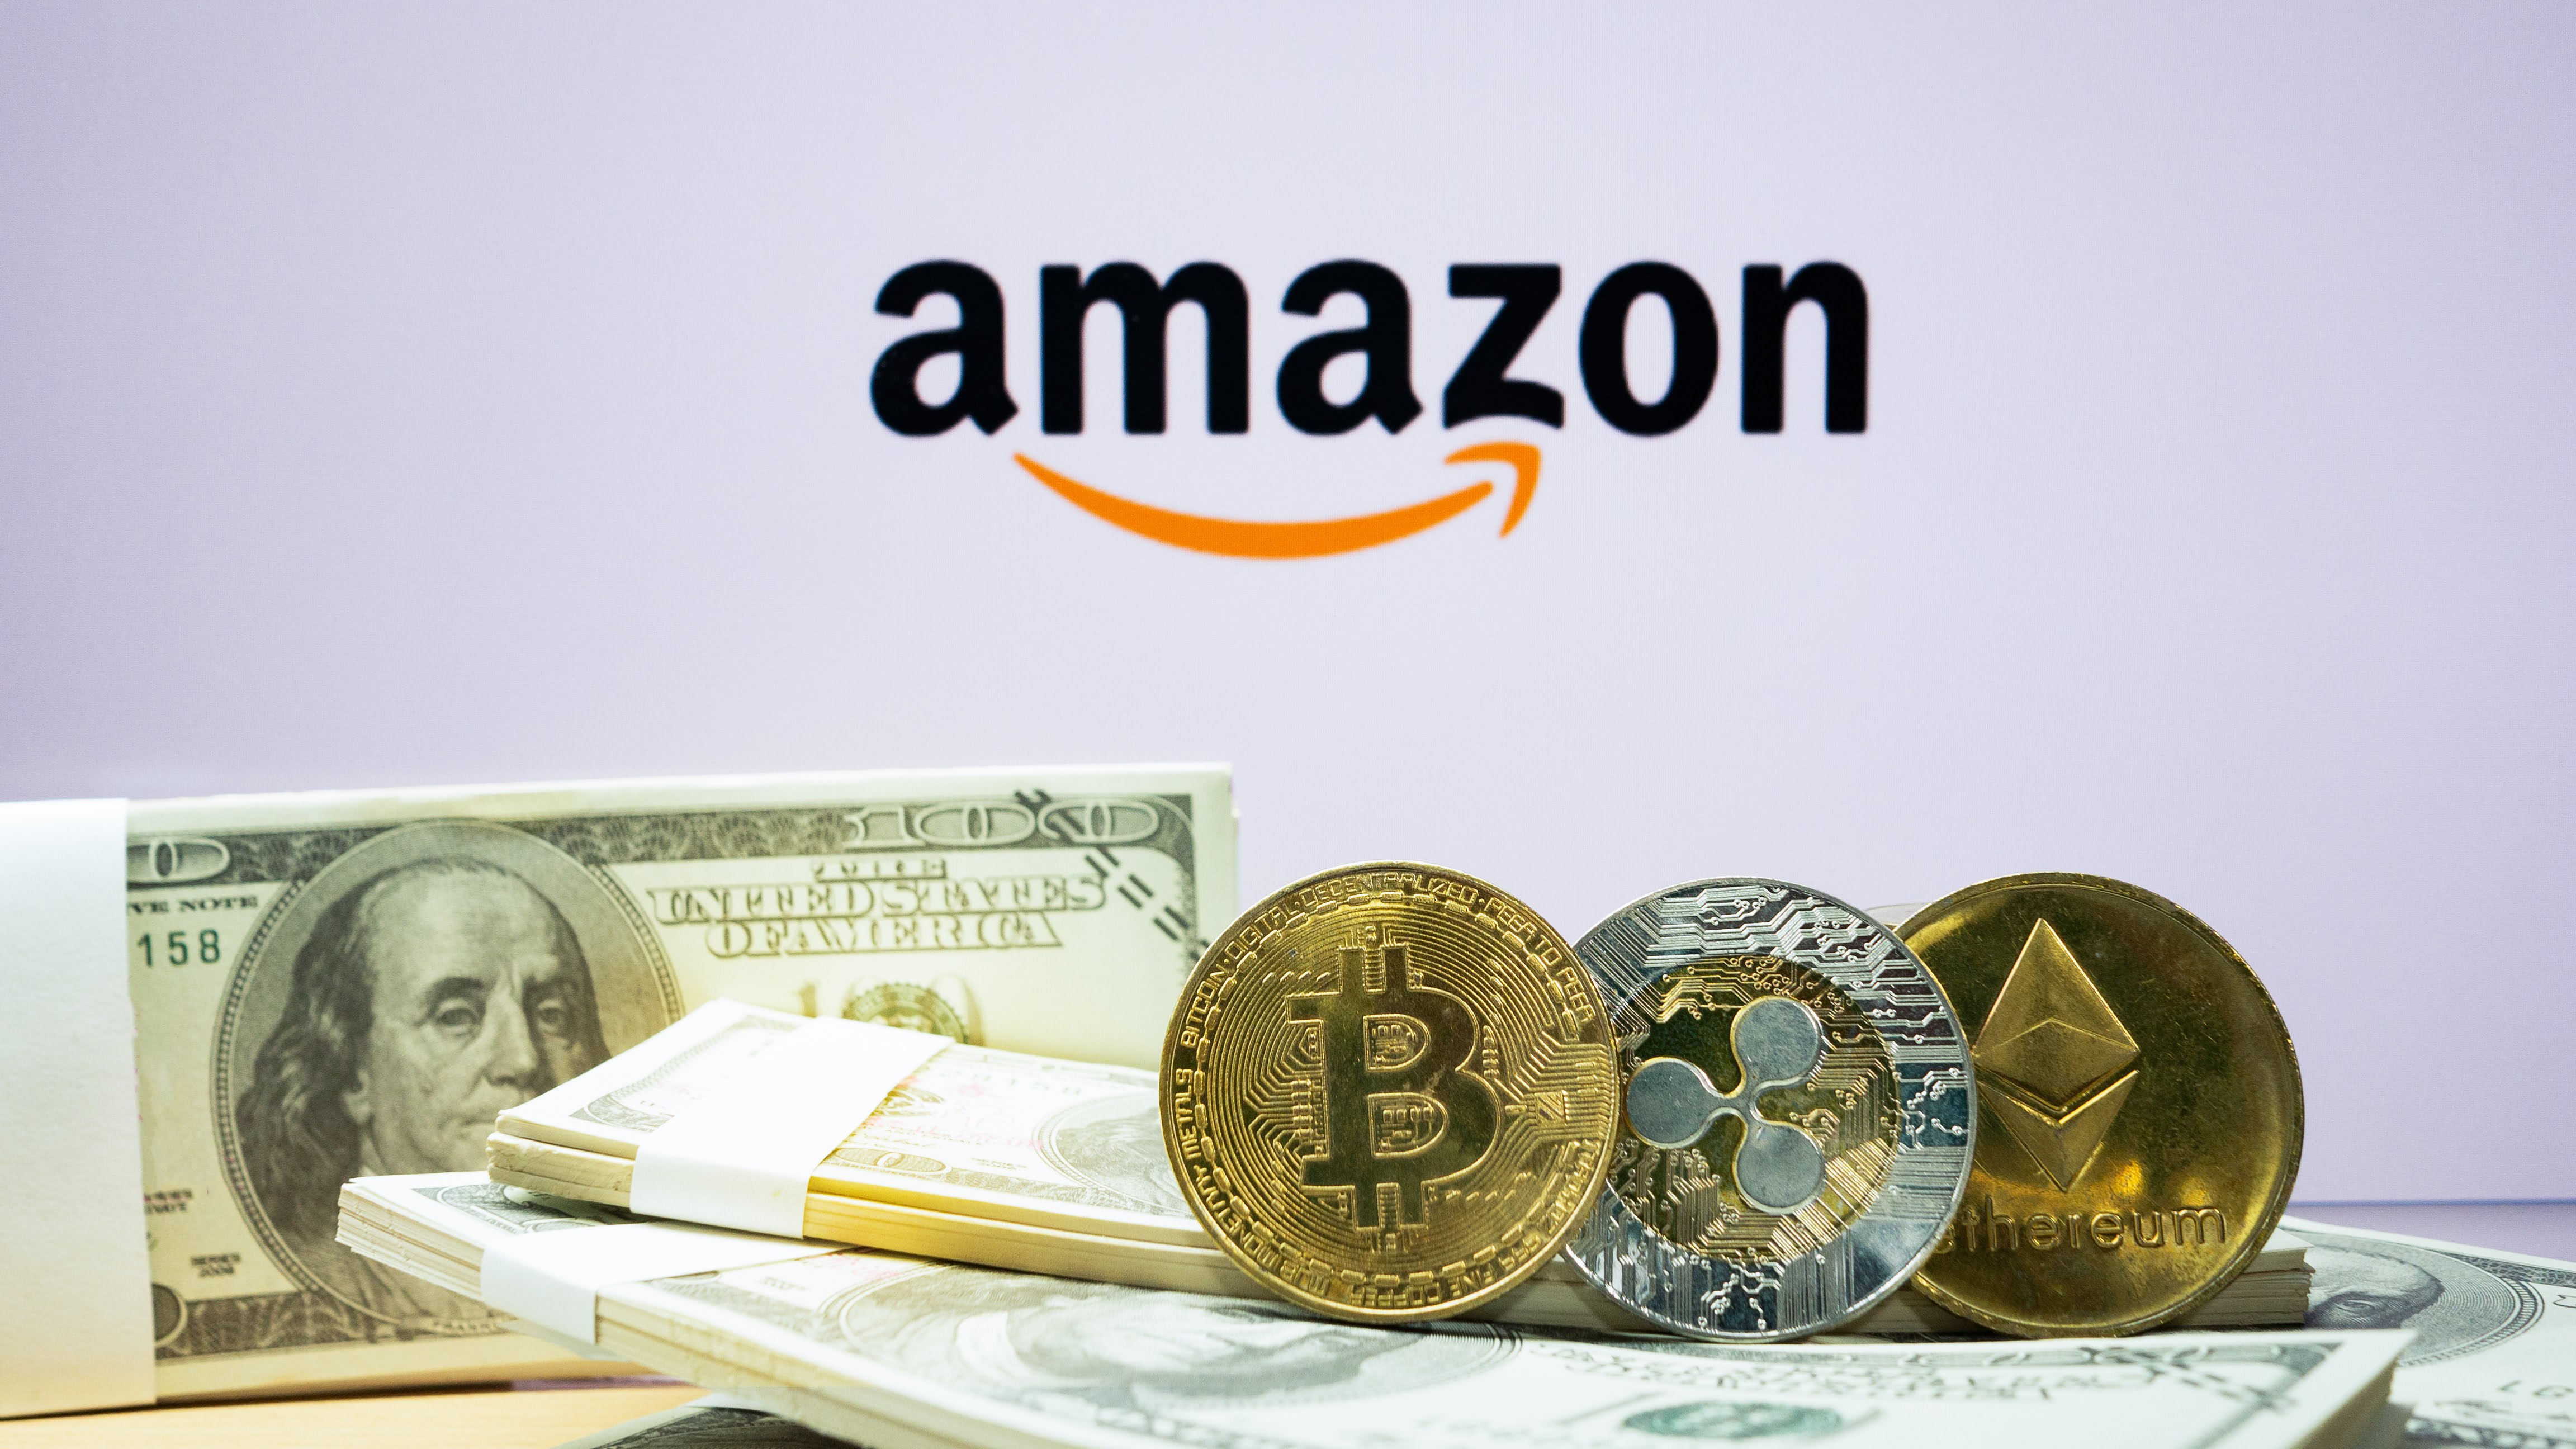 amazon cryptocurrency coin